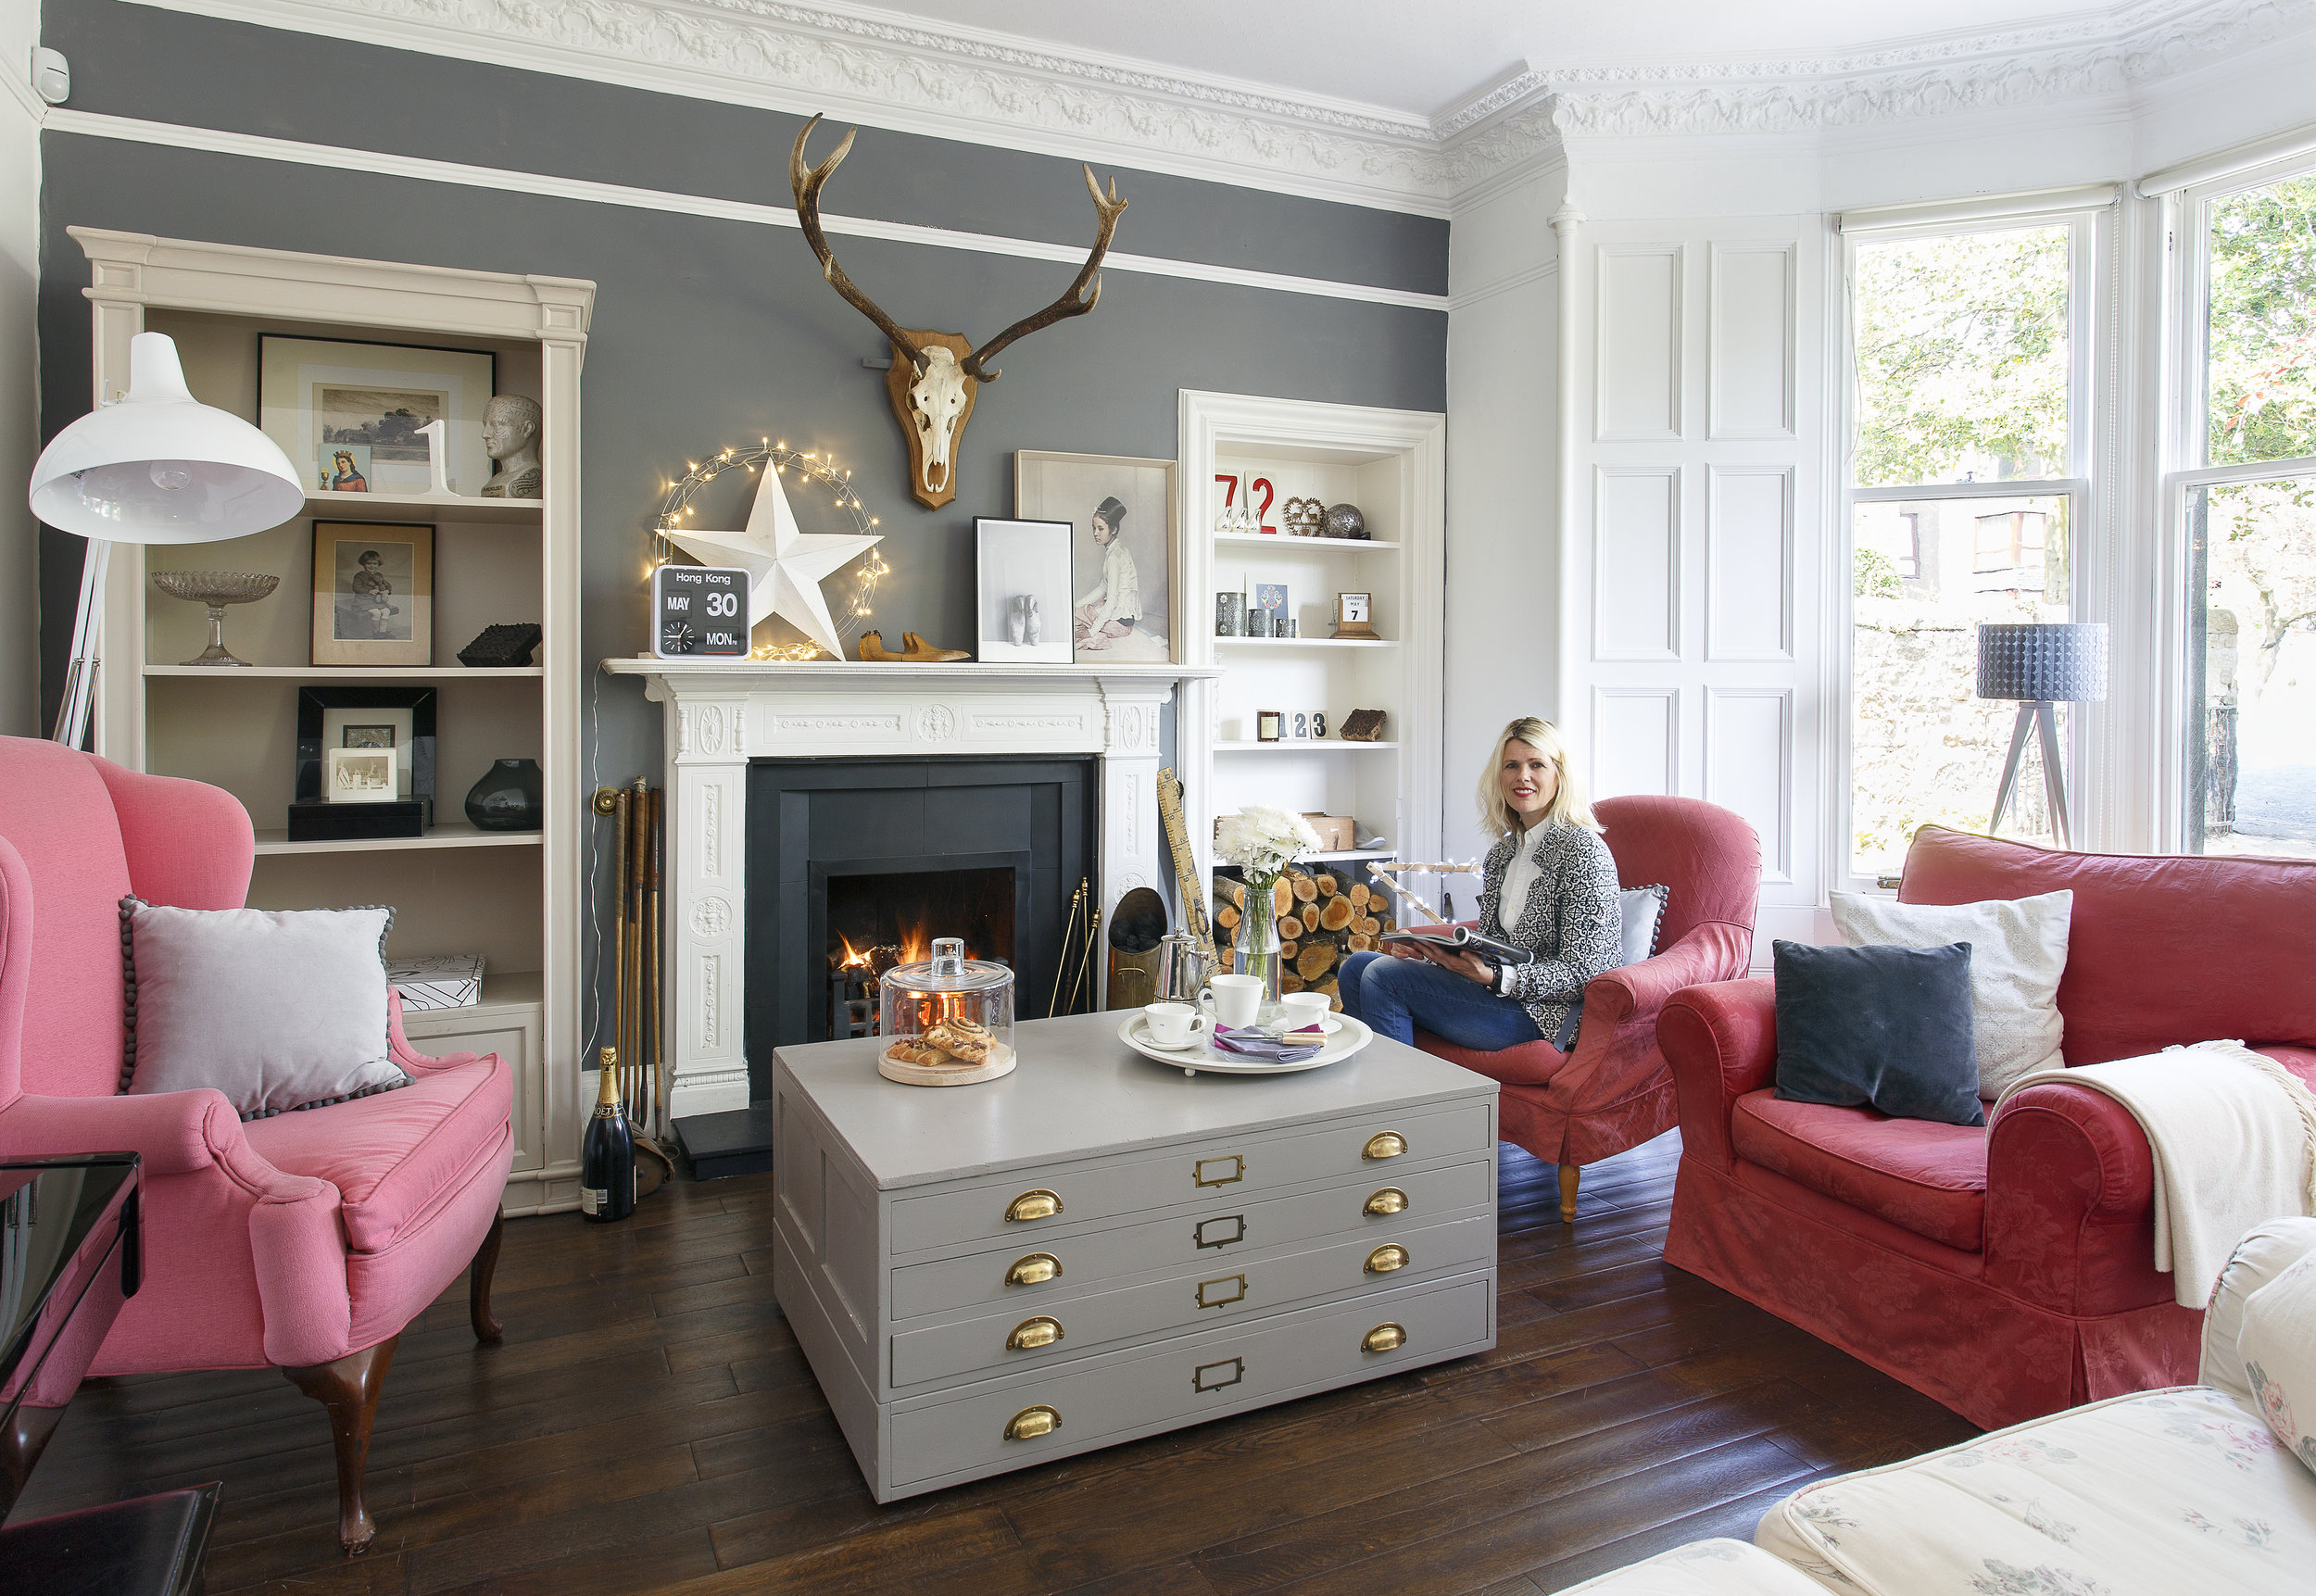 The chimney wall is painted in 'Downpipe' by Farrow & Ball